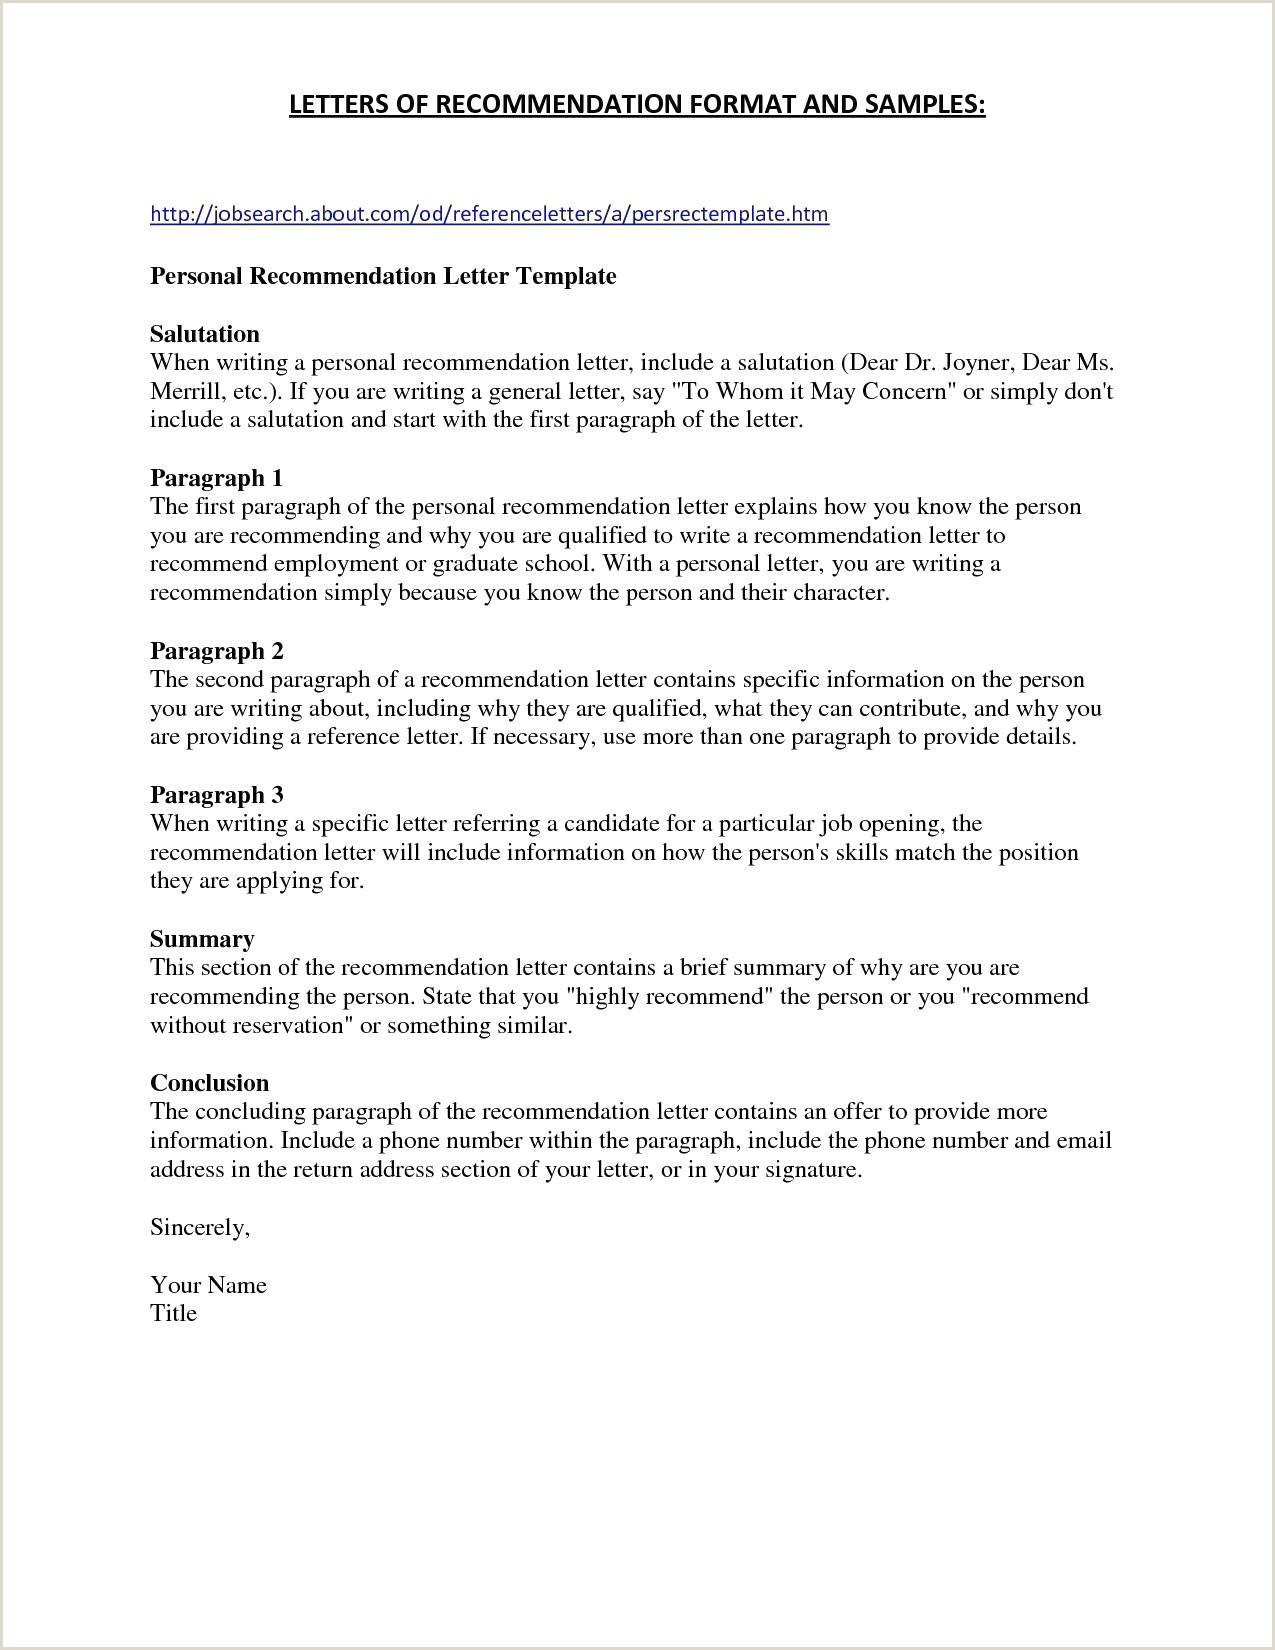 Resume for Real Estate Agent 12 Salesperson Resume Examples